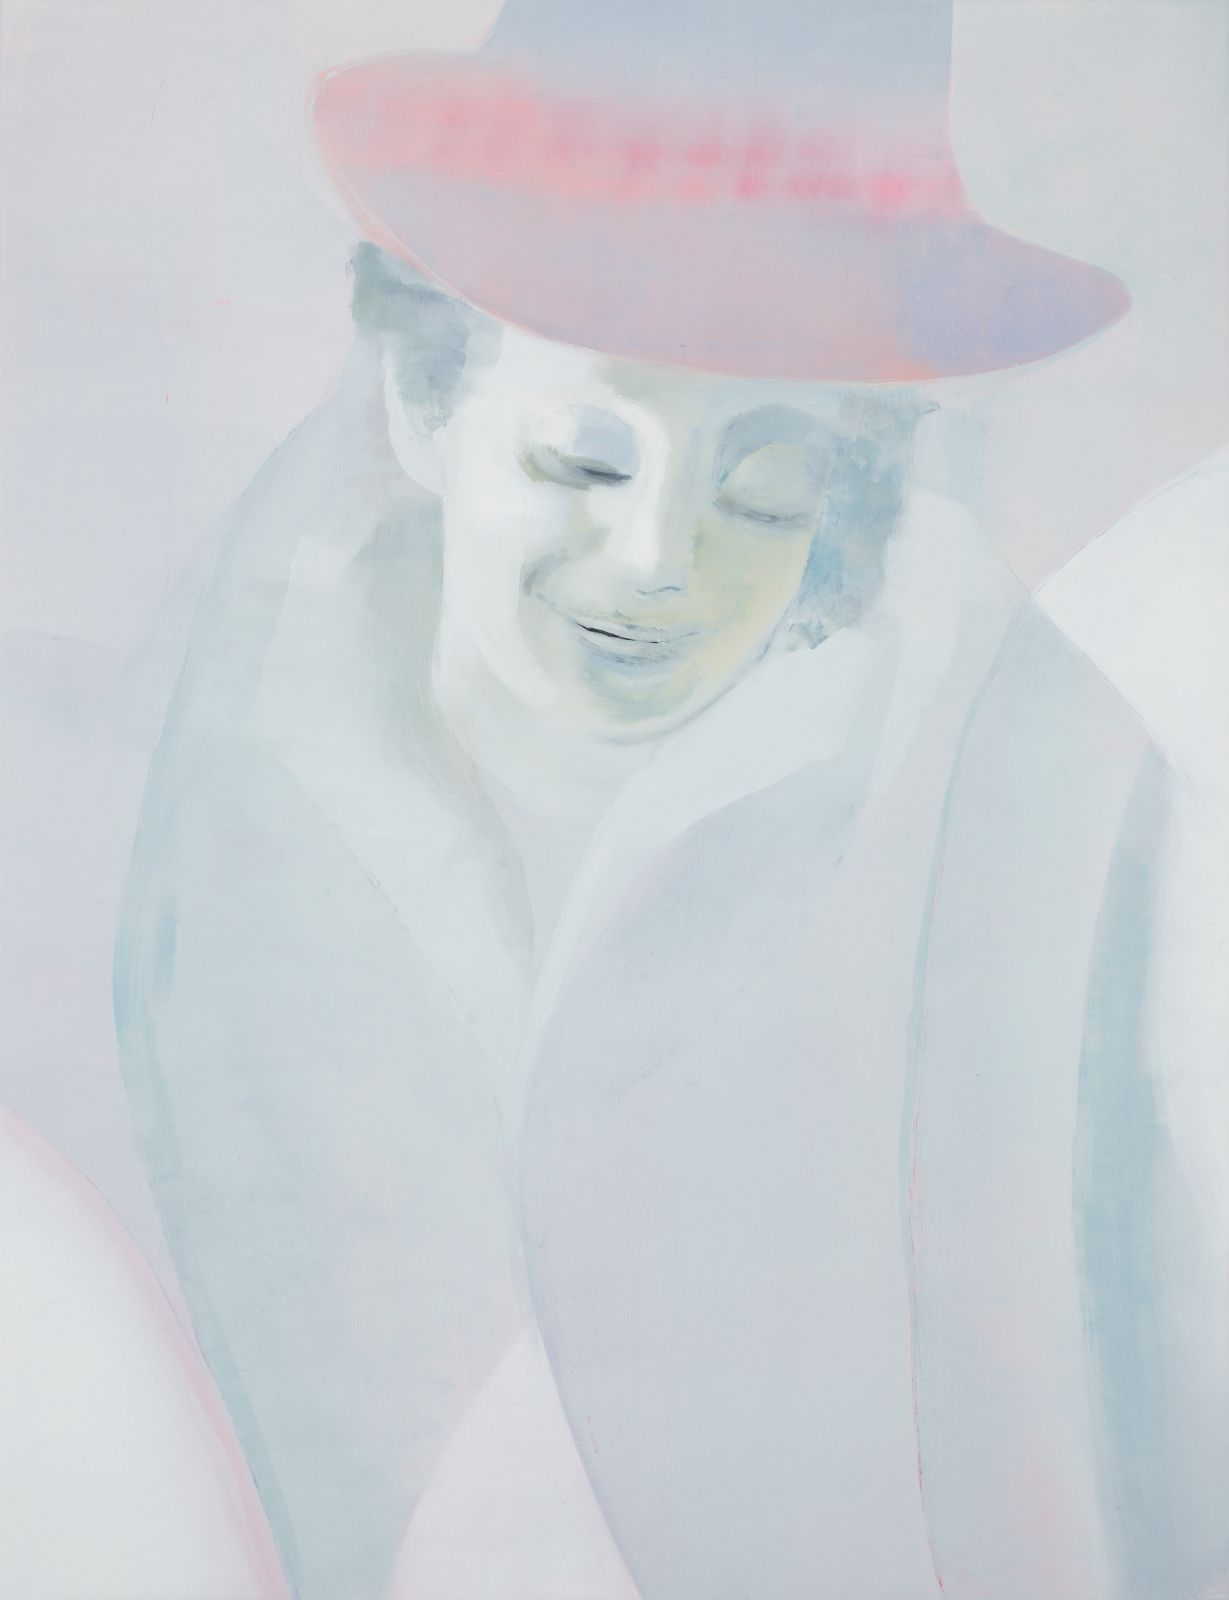 Dover's Hats (pink green), 2012, oil on canvas over panel, 77 x 59 cm